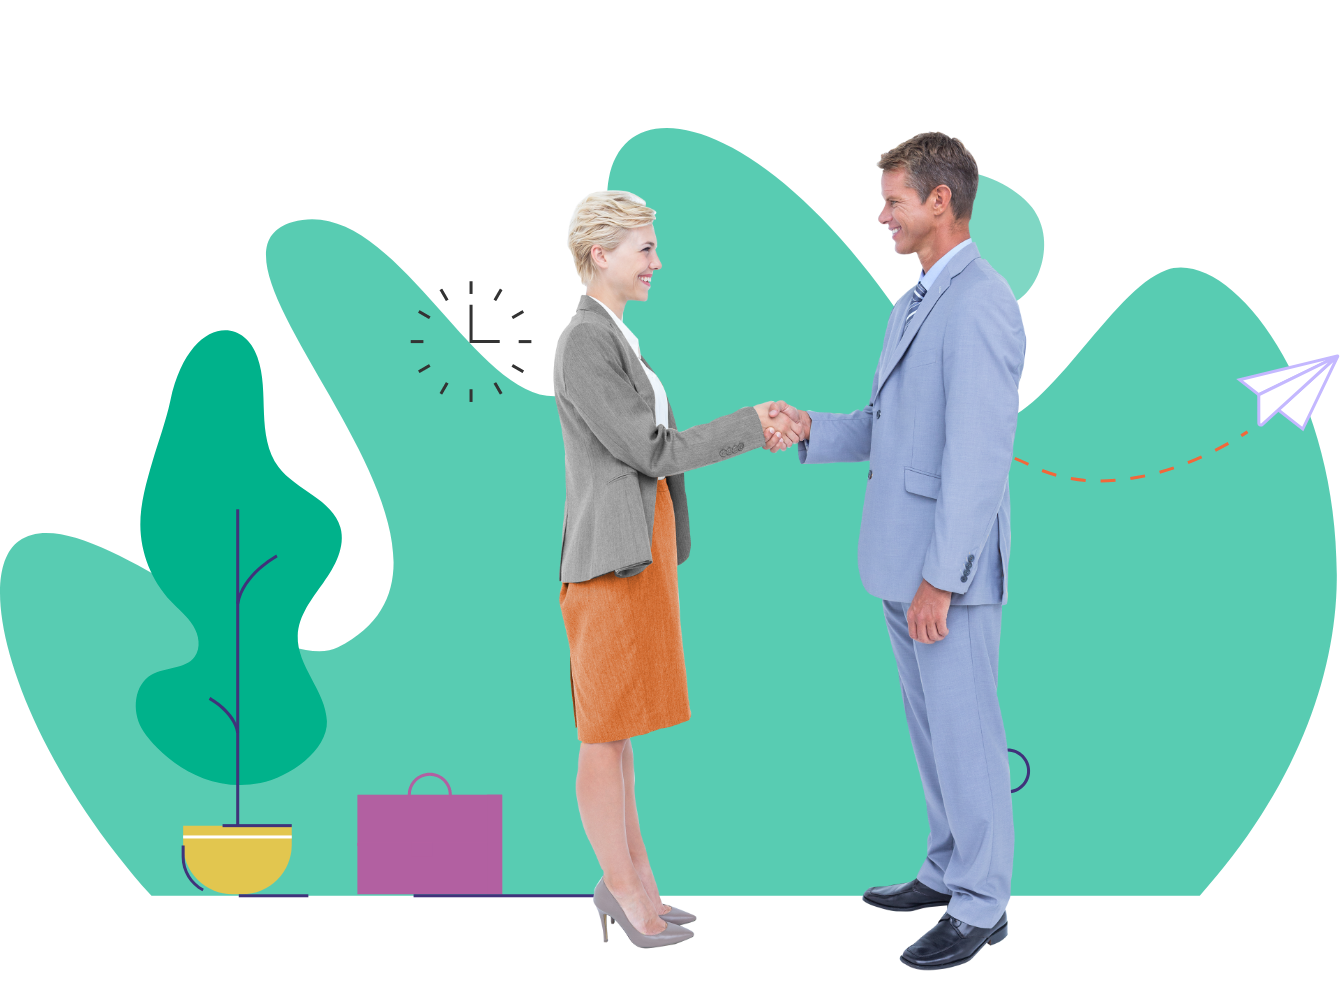 Formally dressed male and female shaking hands with briefcase, plant and green graphic background